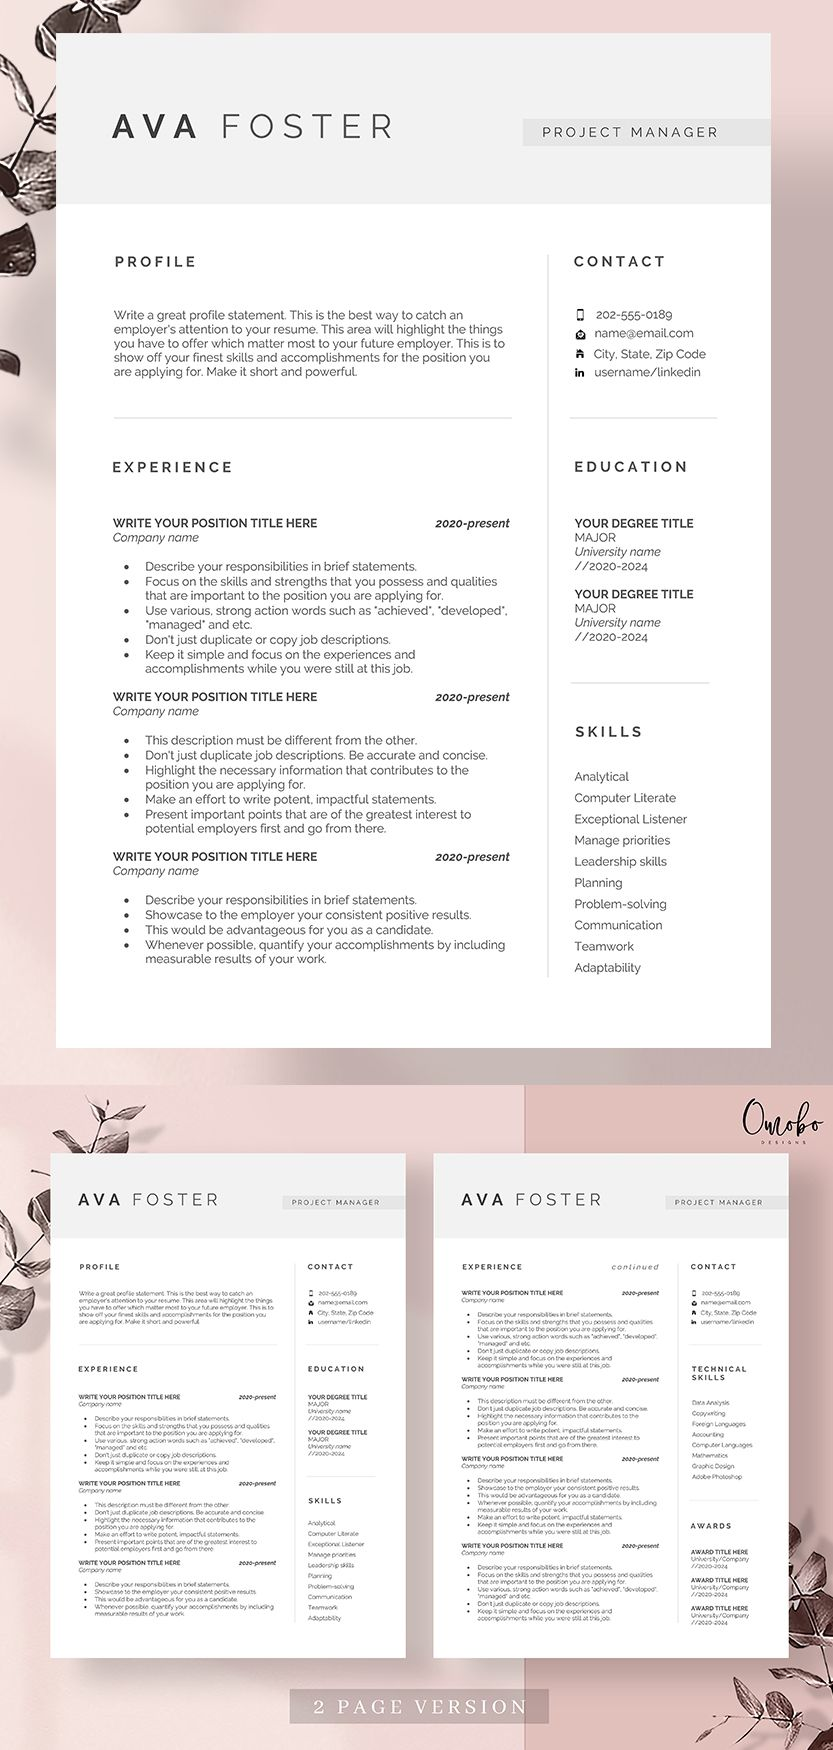 Professional Resume Template Resume Template Resume Resume Templates Curriculum Vitae Ms Word Functional Template Cv Template Ava Resume Template Resume Template Professional Resume Templates Resume template open office free